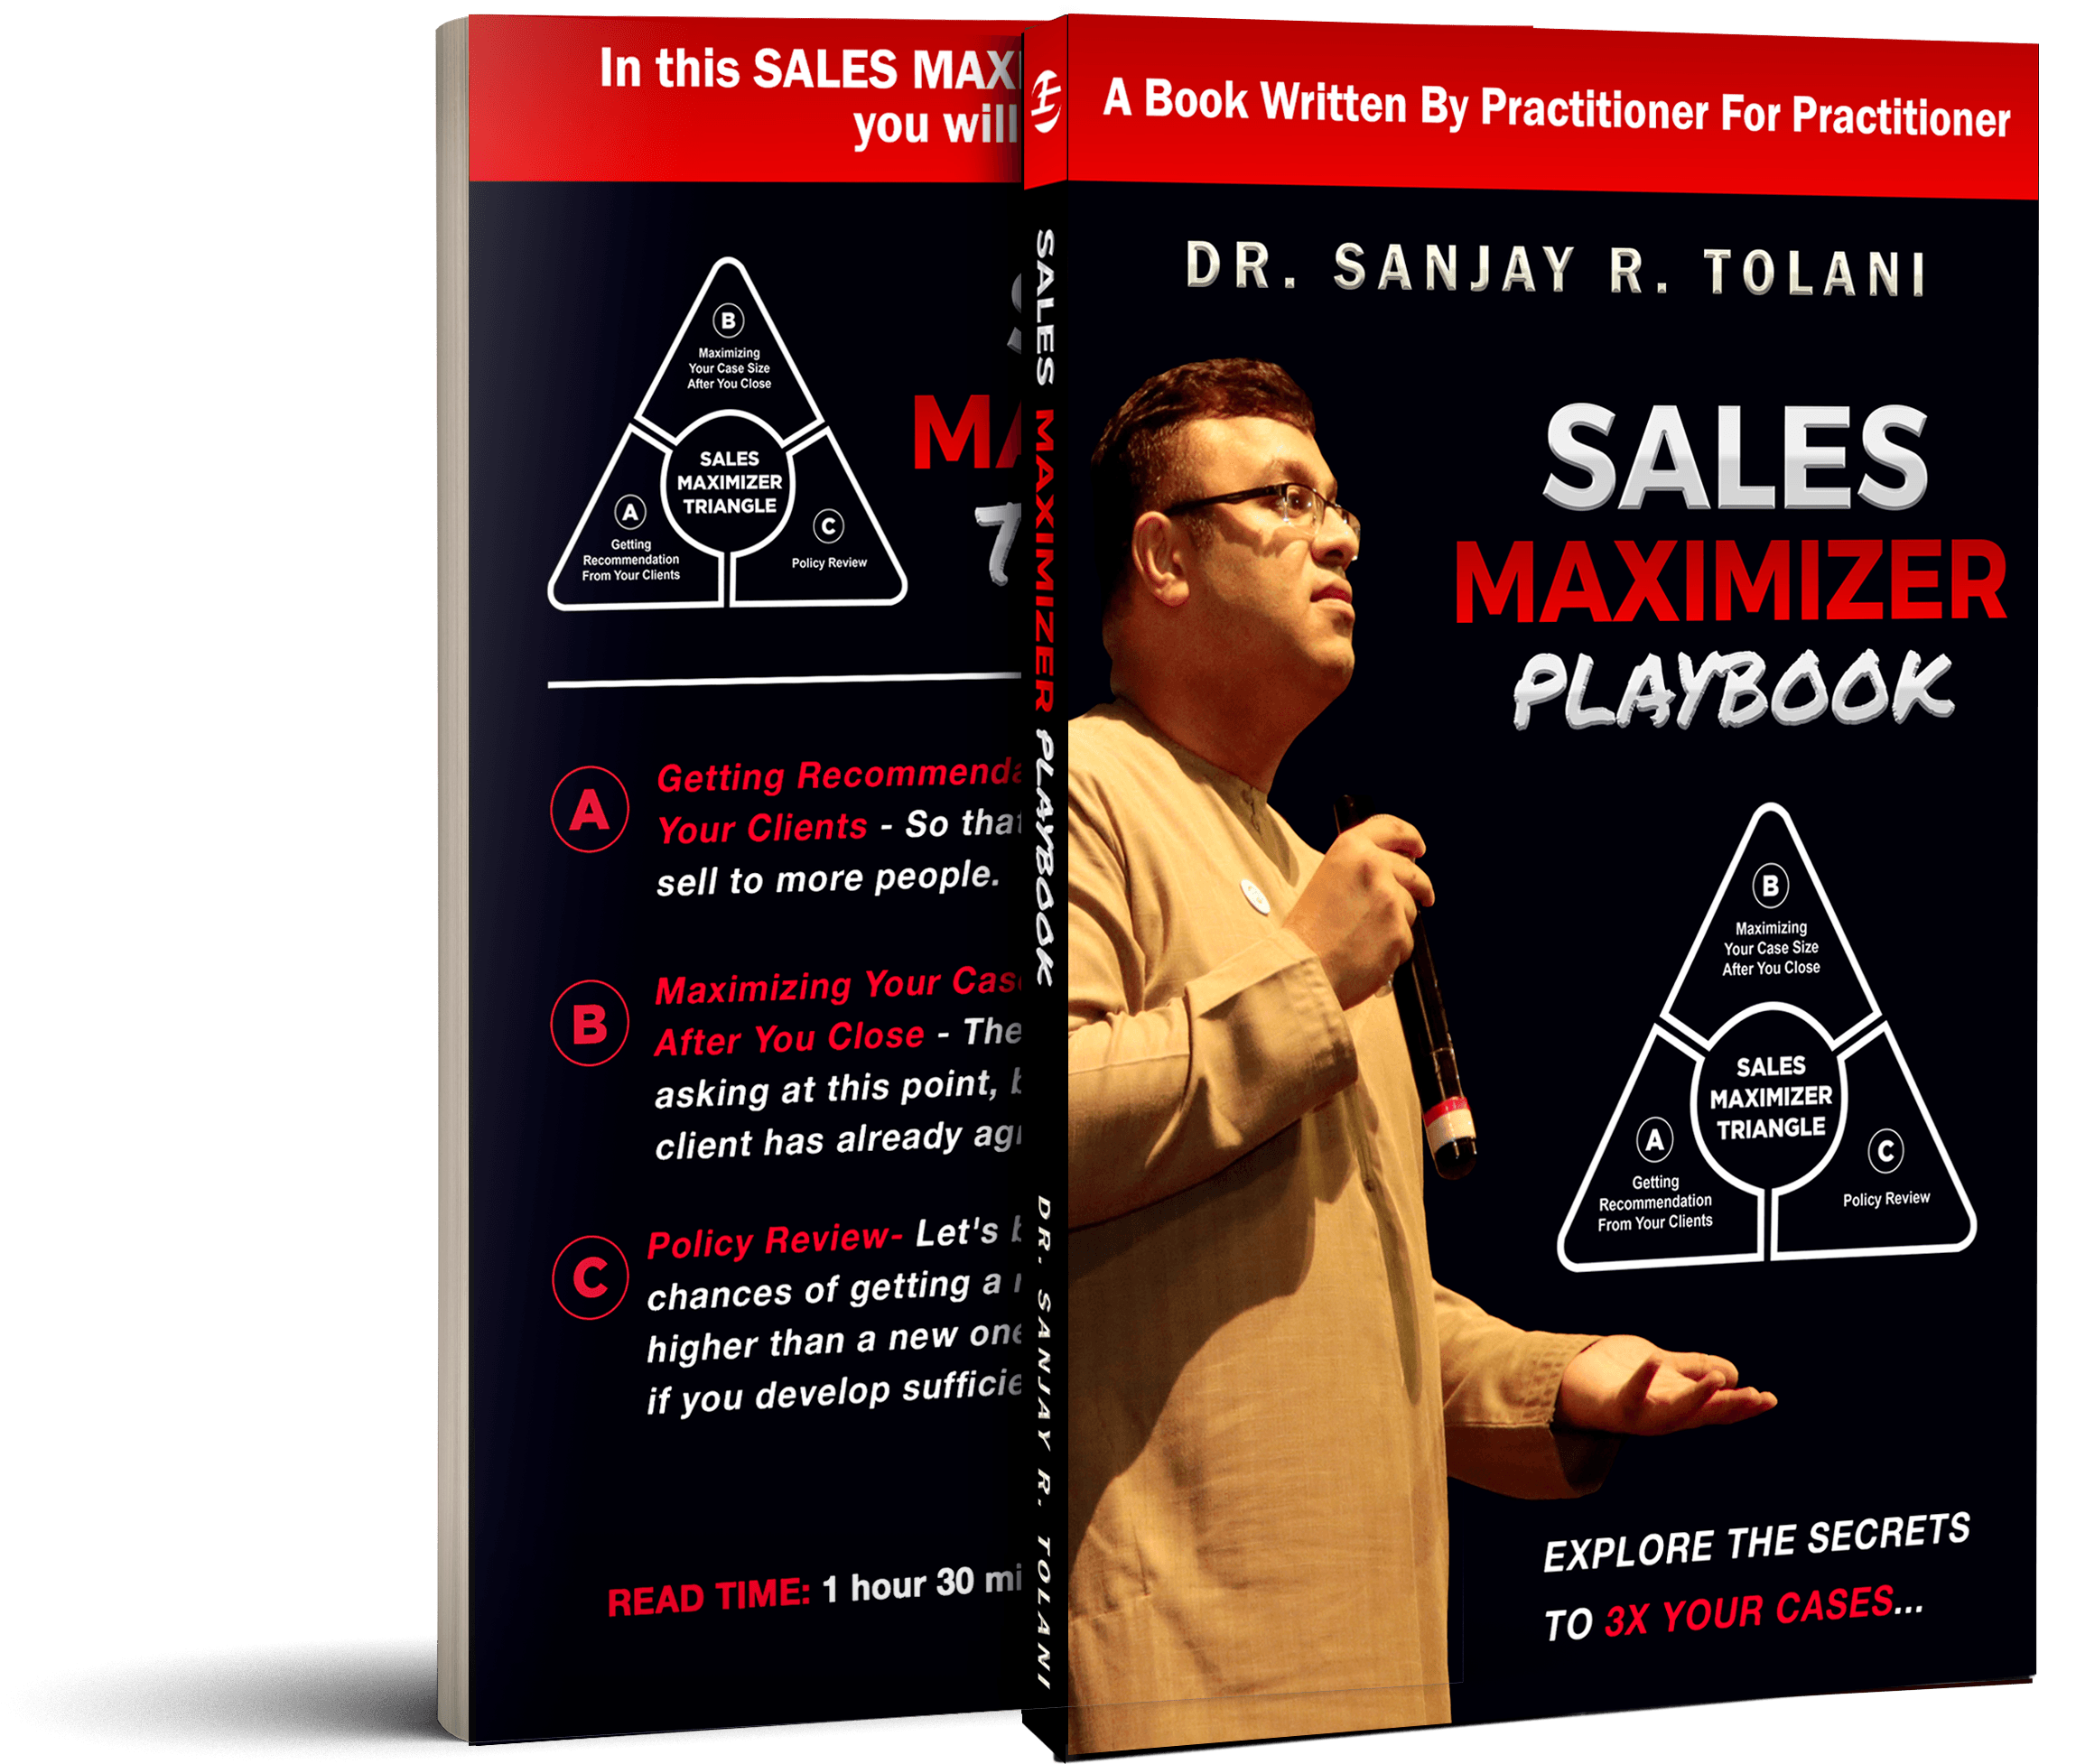 The Sales Maximizer Playbook